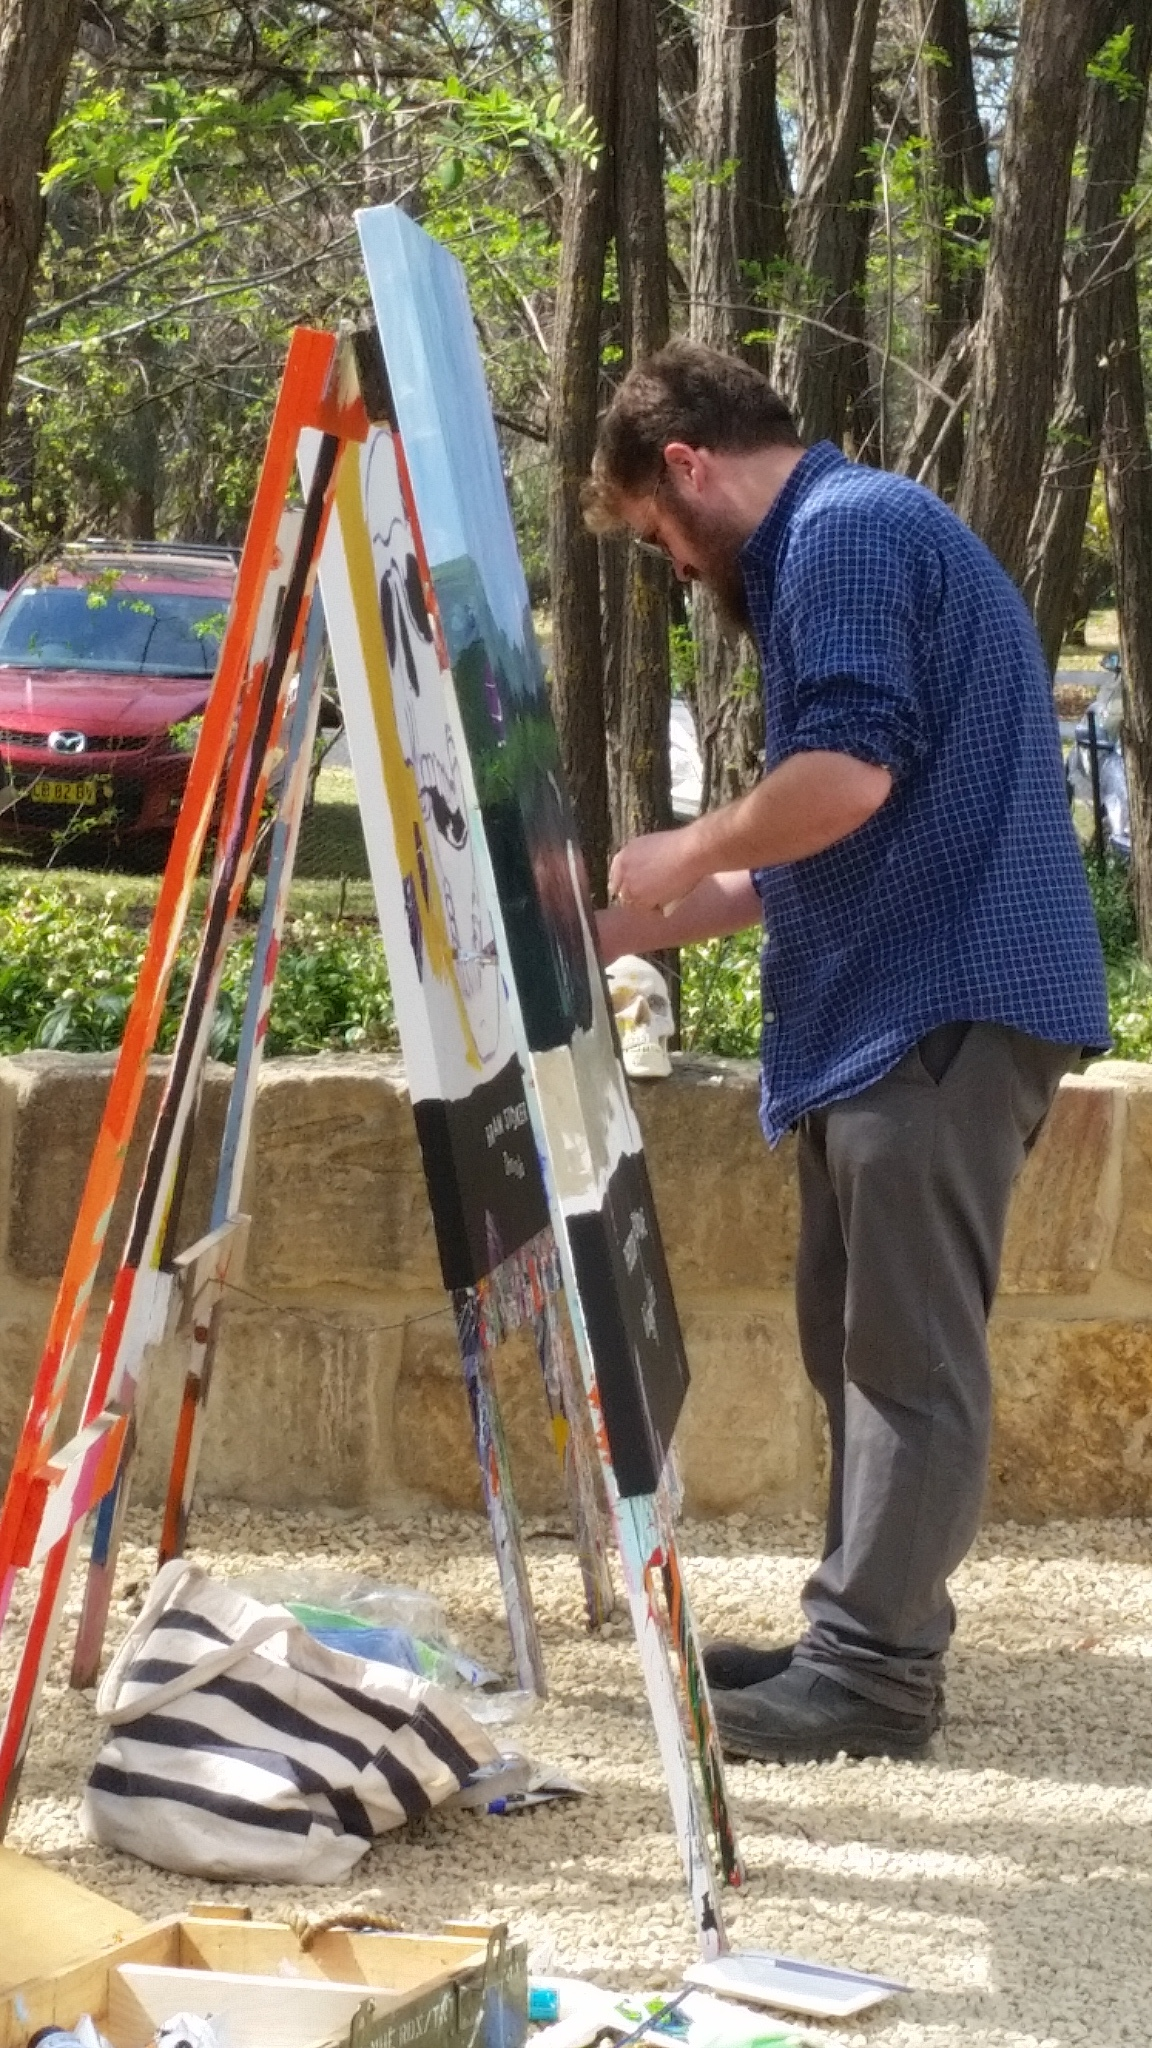 Ben at work in the grounds of the gallery